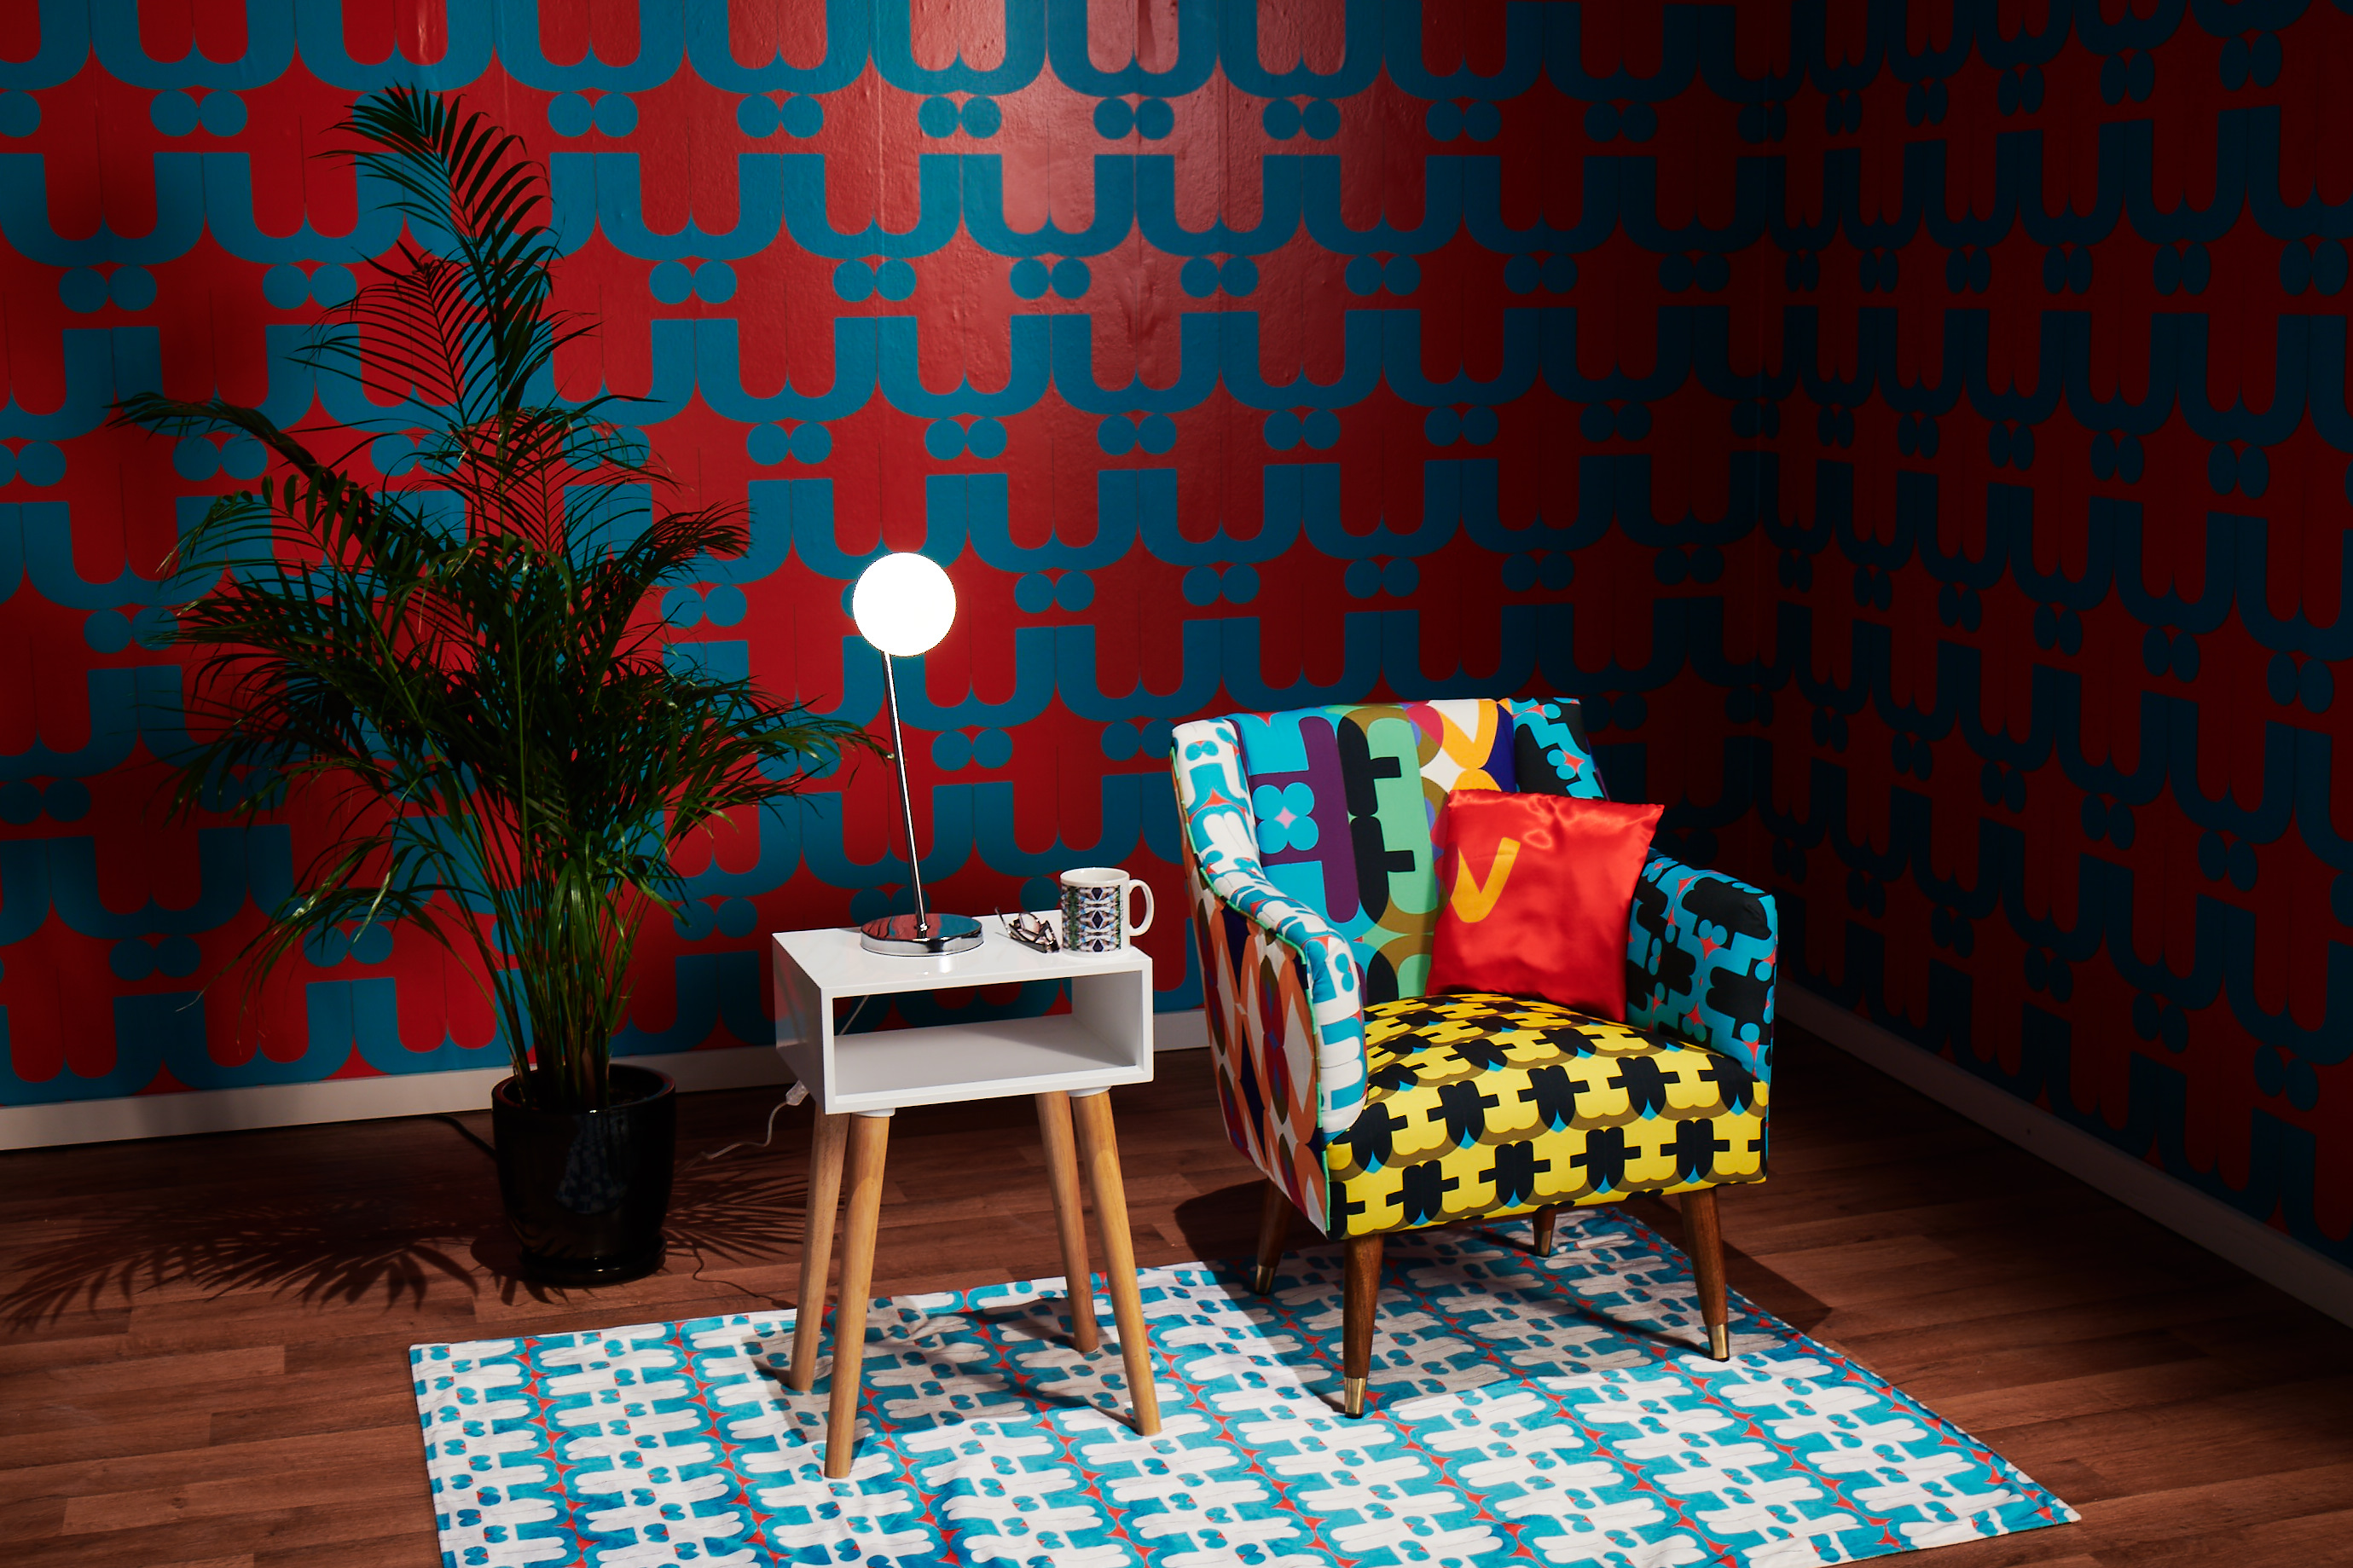 Image shows a domestic lounge in vibrantly patterned furnishings. Centrally placed is an armchair upholstered in a variety of different and colourful fabrics, each printed with a pattern made from mirroring a letter of the ITV logo. Where the fabrics intersect on the backrest, they form the full logo. The chair sits on a similarly patterned rug and the backdrop is vibrantly patterned wallpaper.